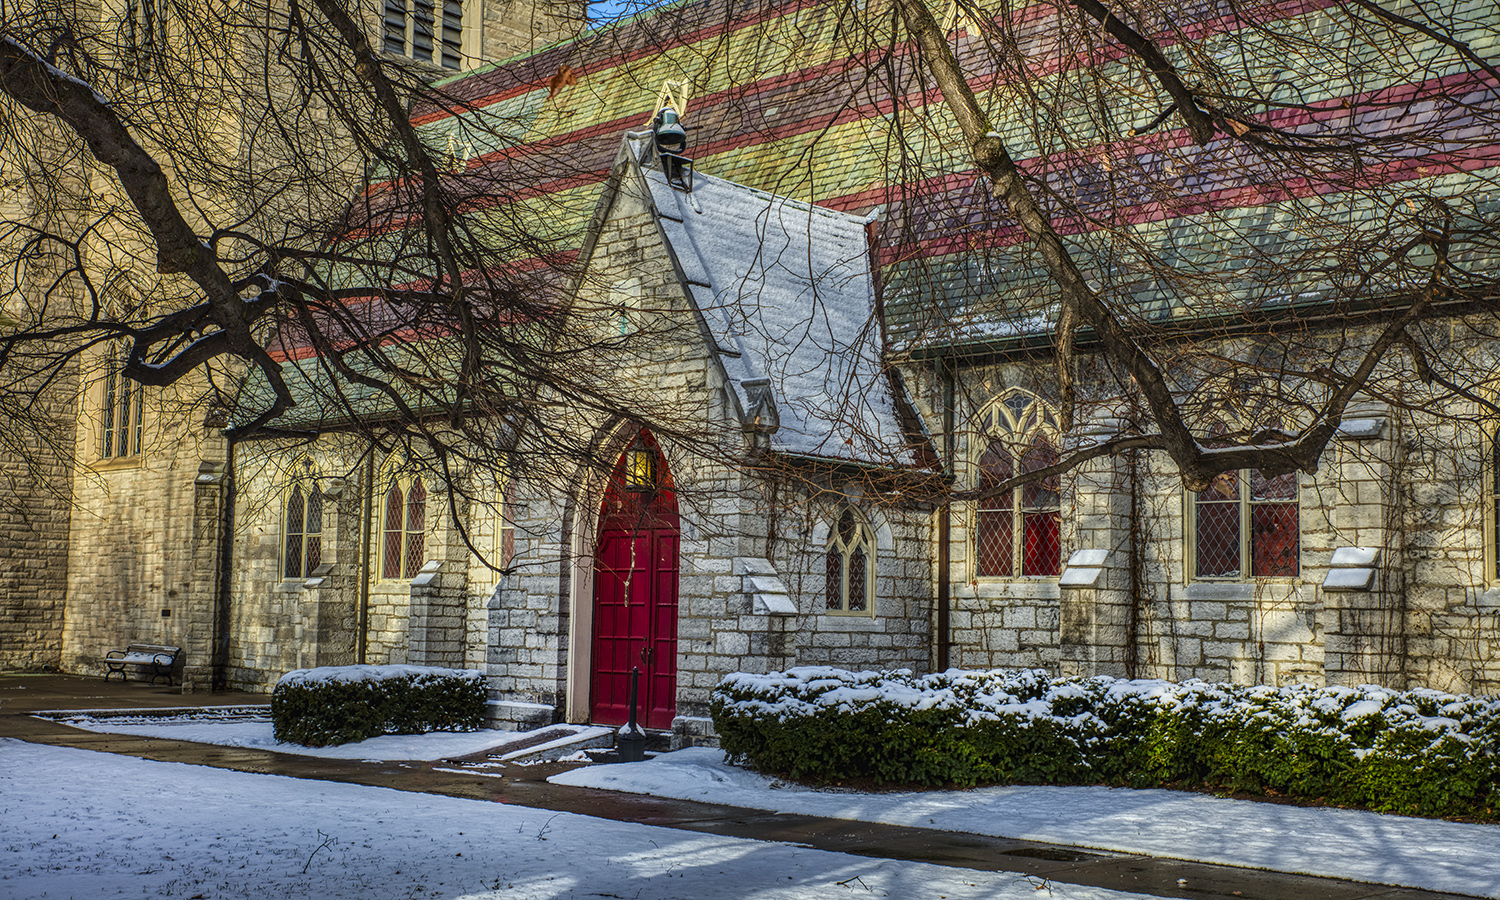 The red doors of the chapel illuminated by sunlight in December.